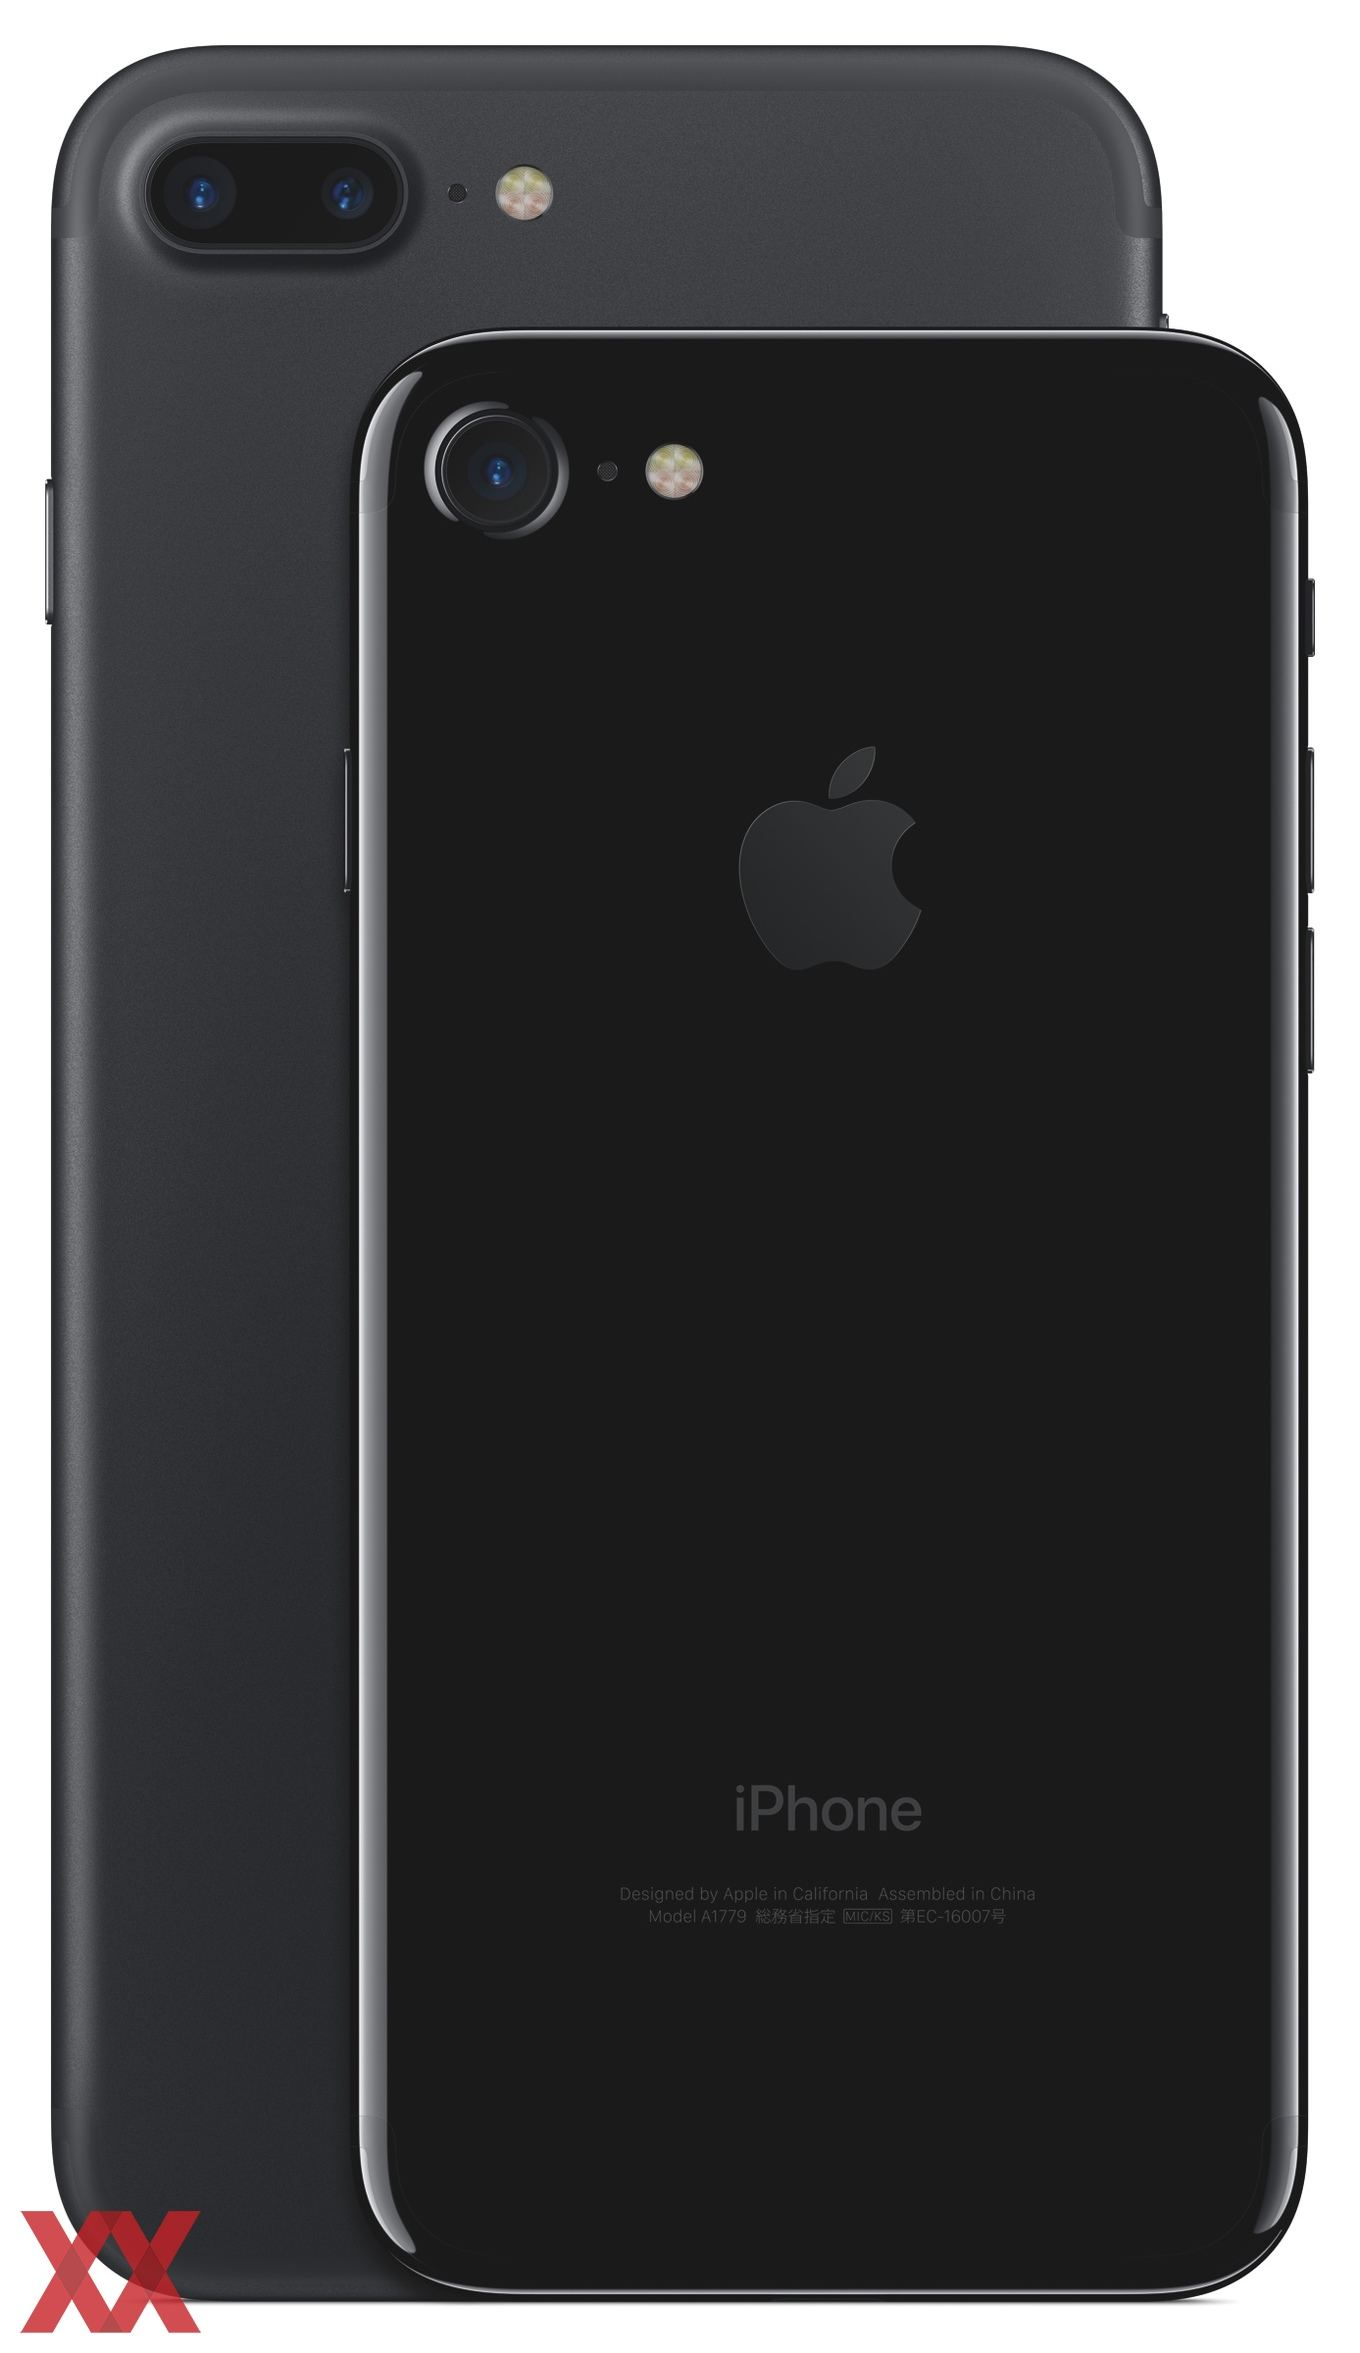 Aldi Iphone 7